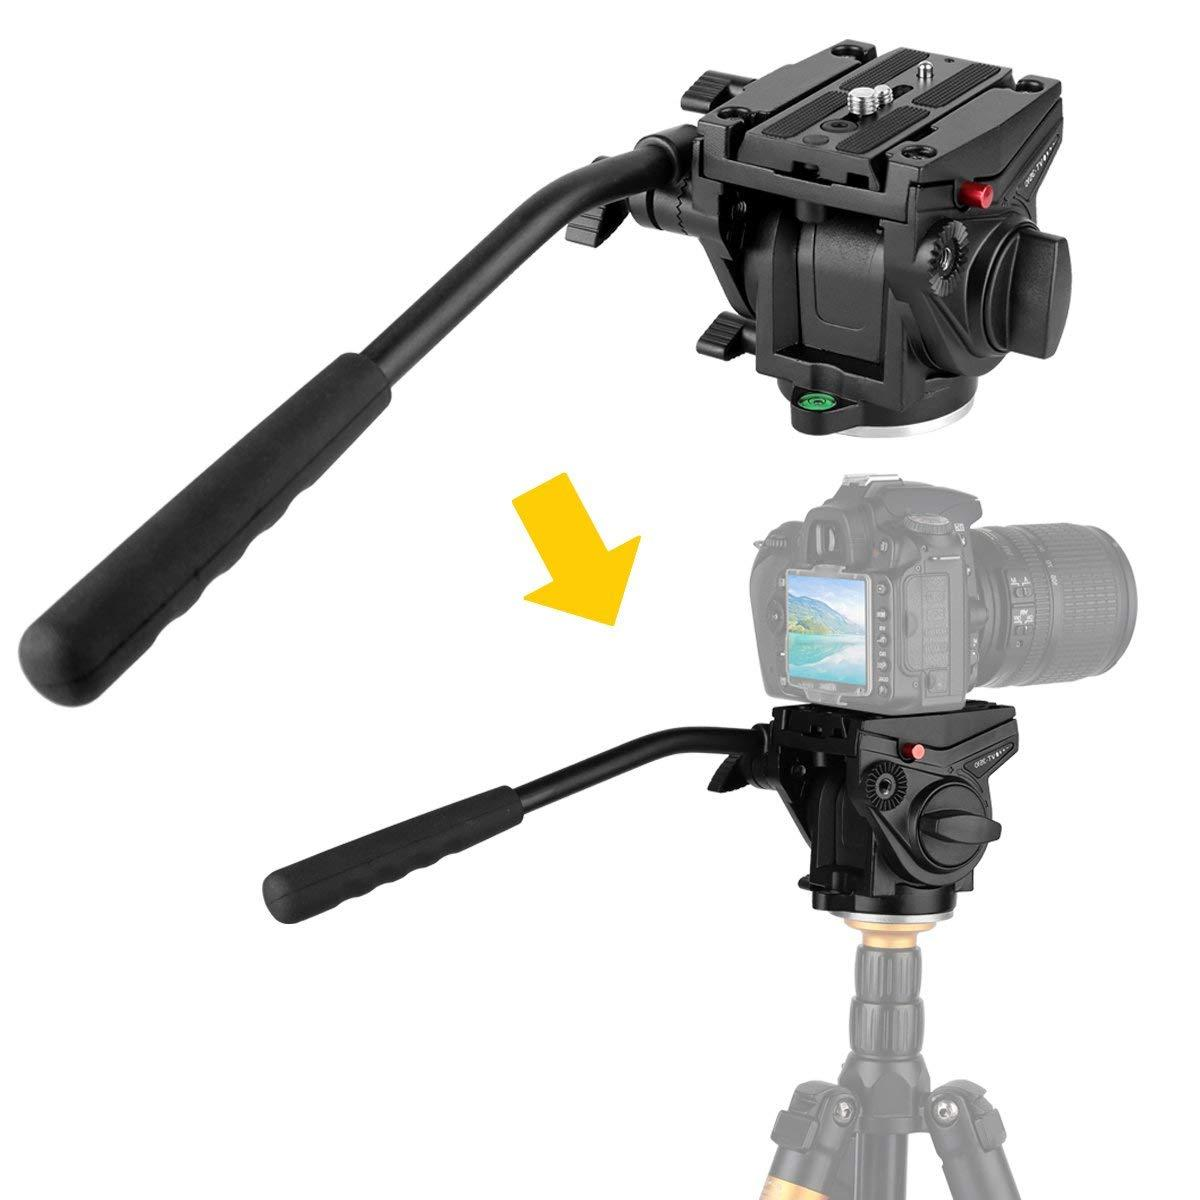 KINGJOY Heavy Duty Video Camera <font><b>Fluid</b></font> Dr